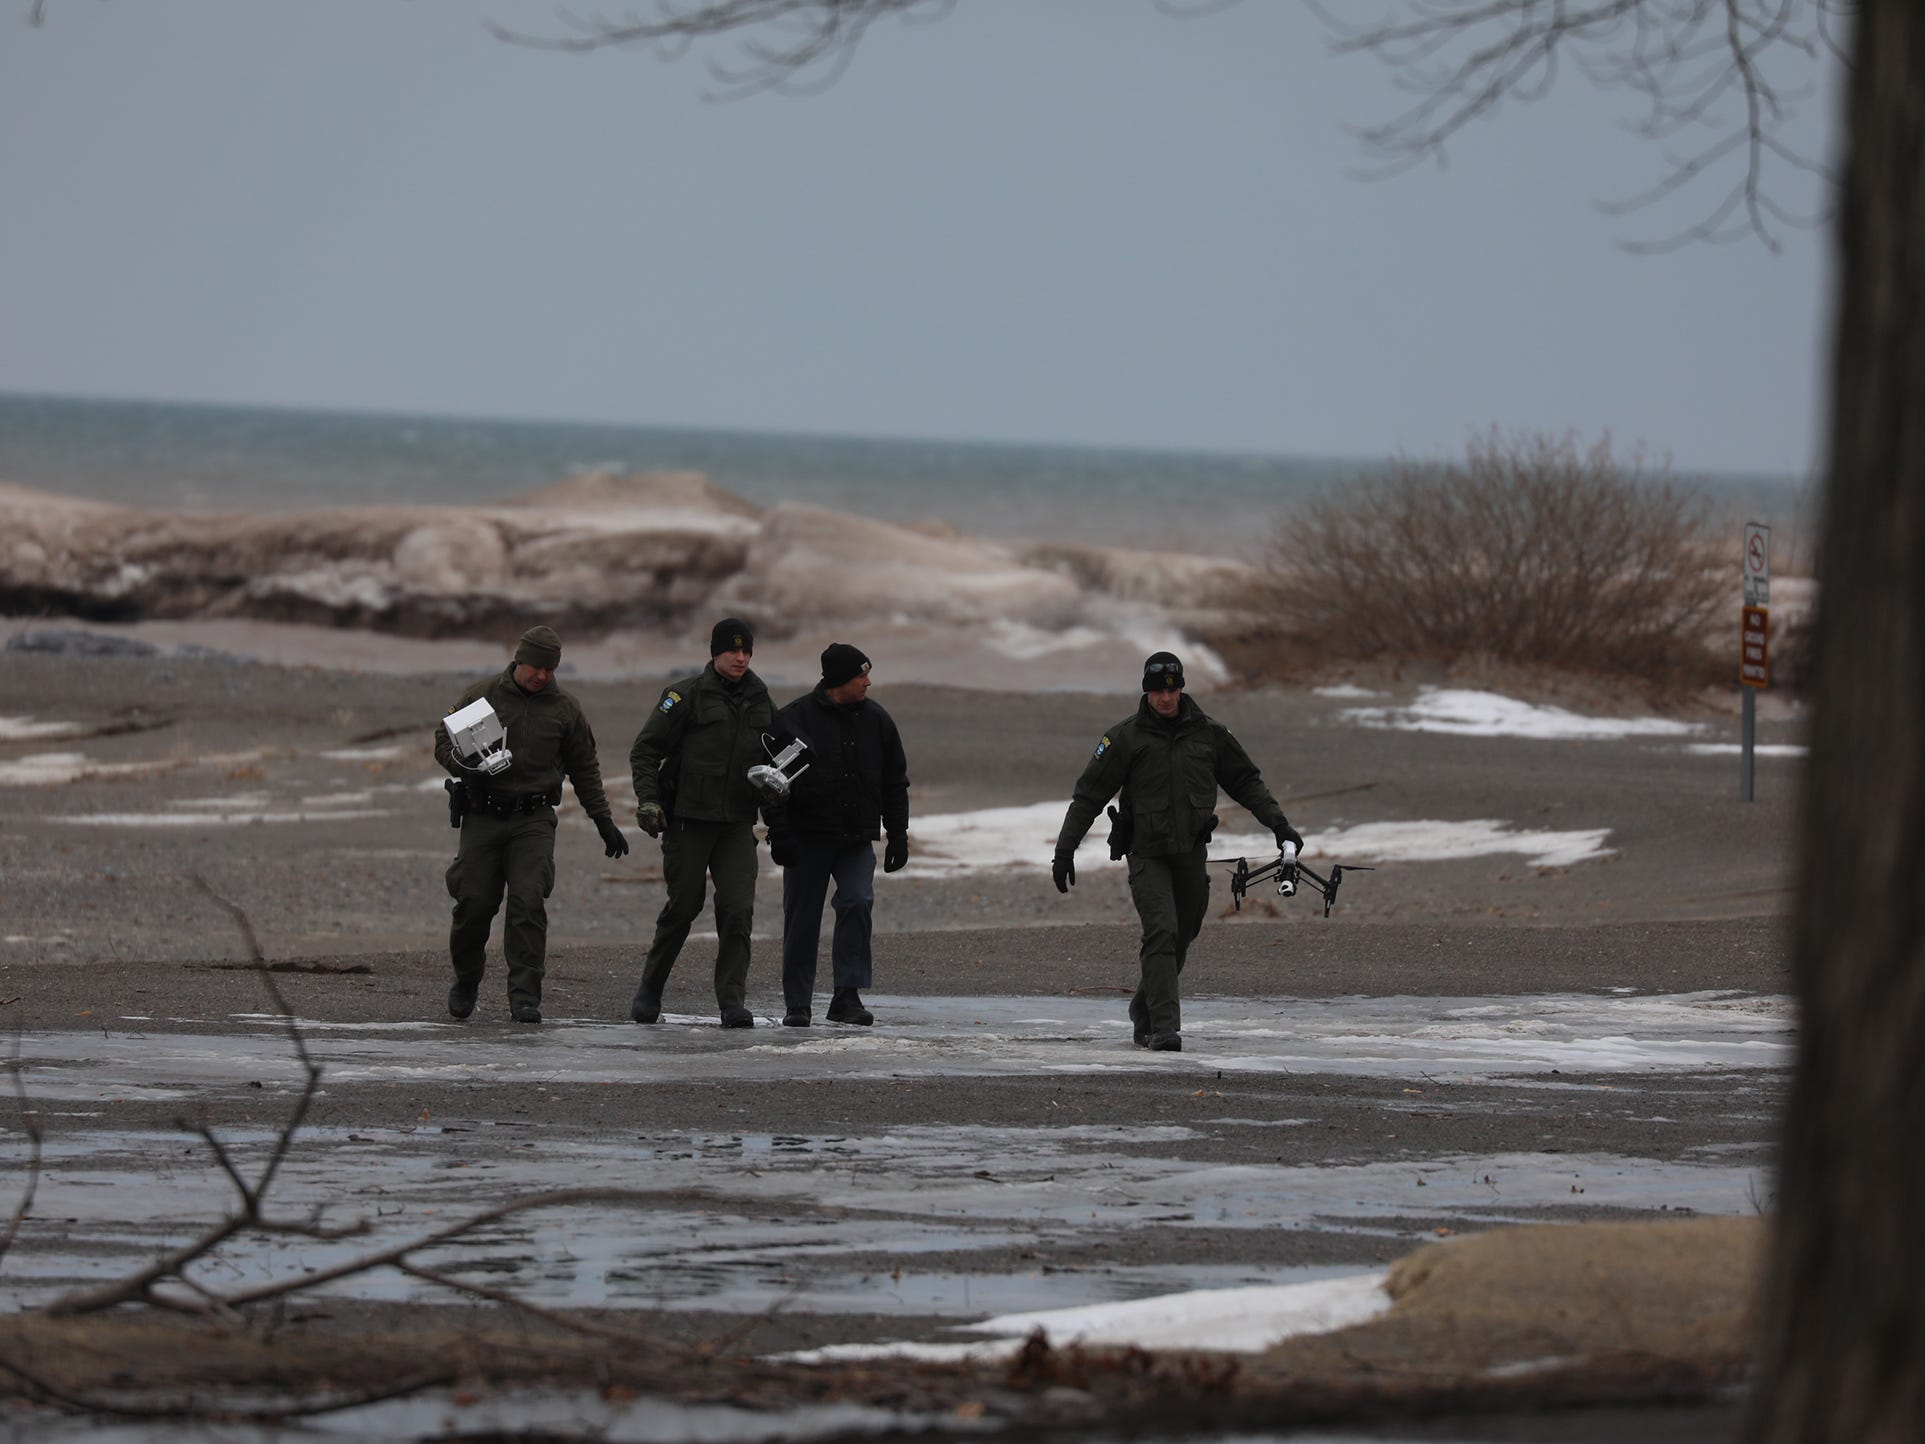 Forest rangers were using a drone to search the shoreline and nearby area.